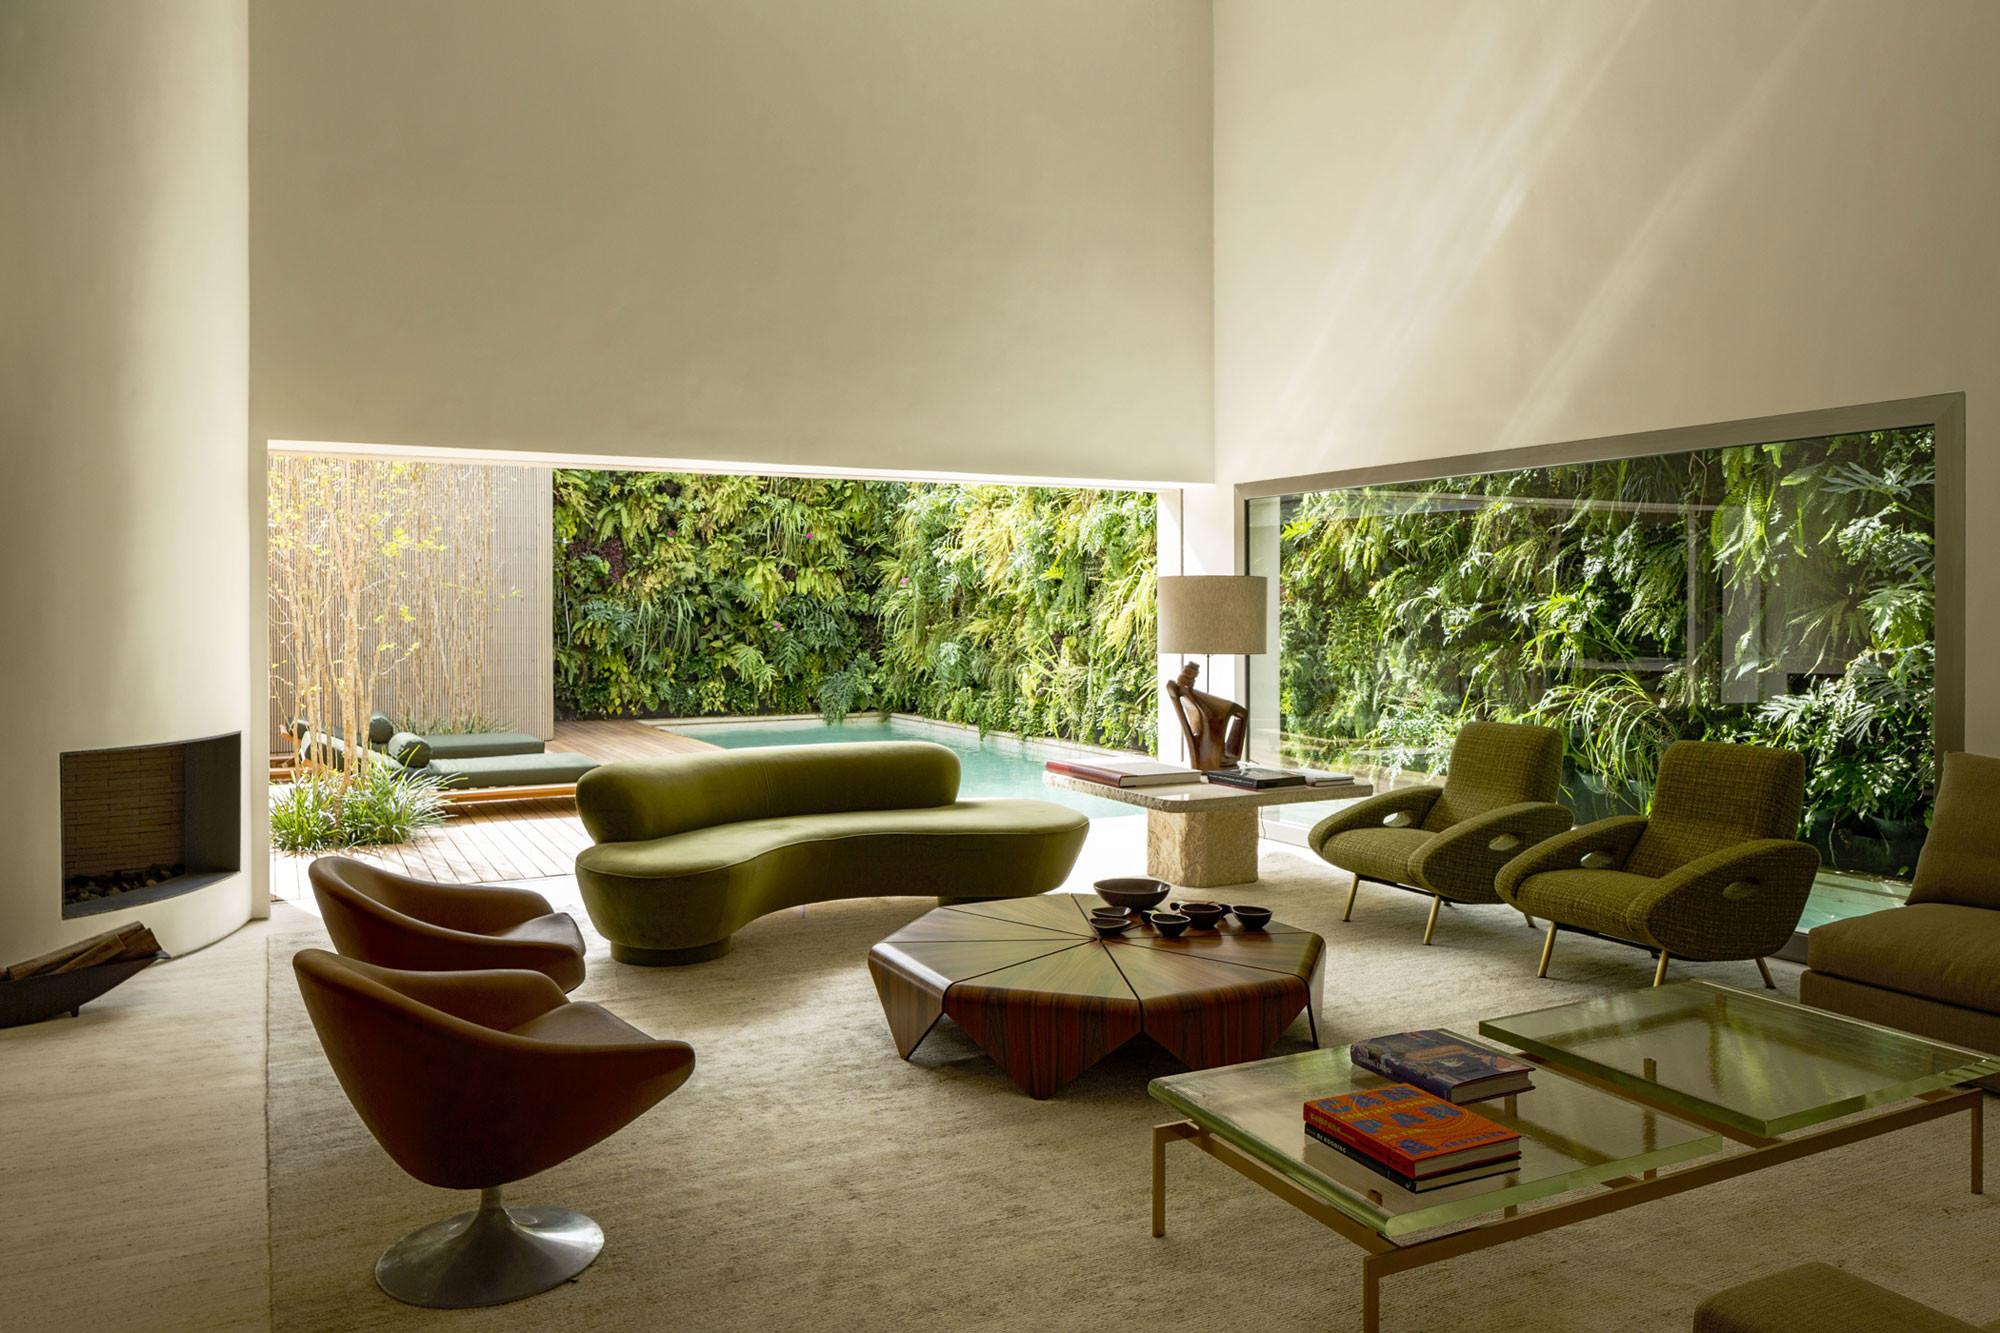 80s Paulo Home Gets Renovated